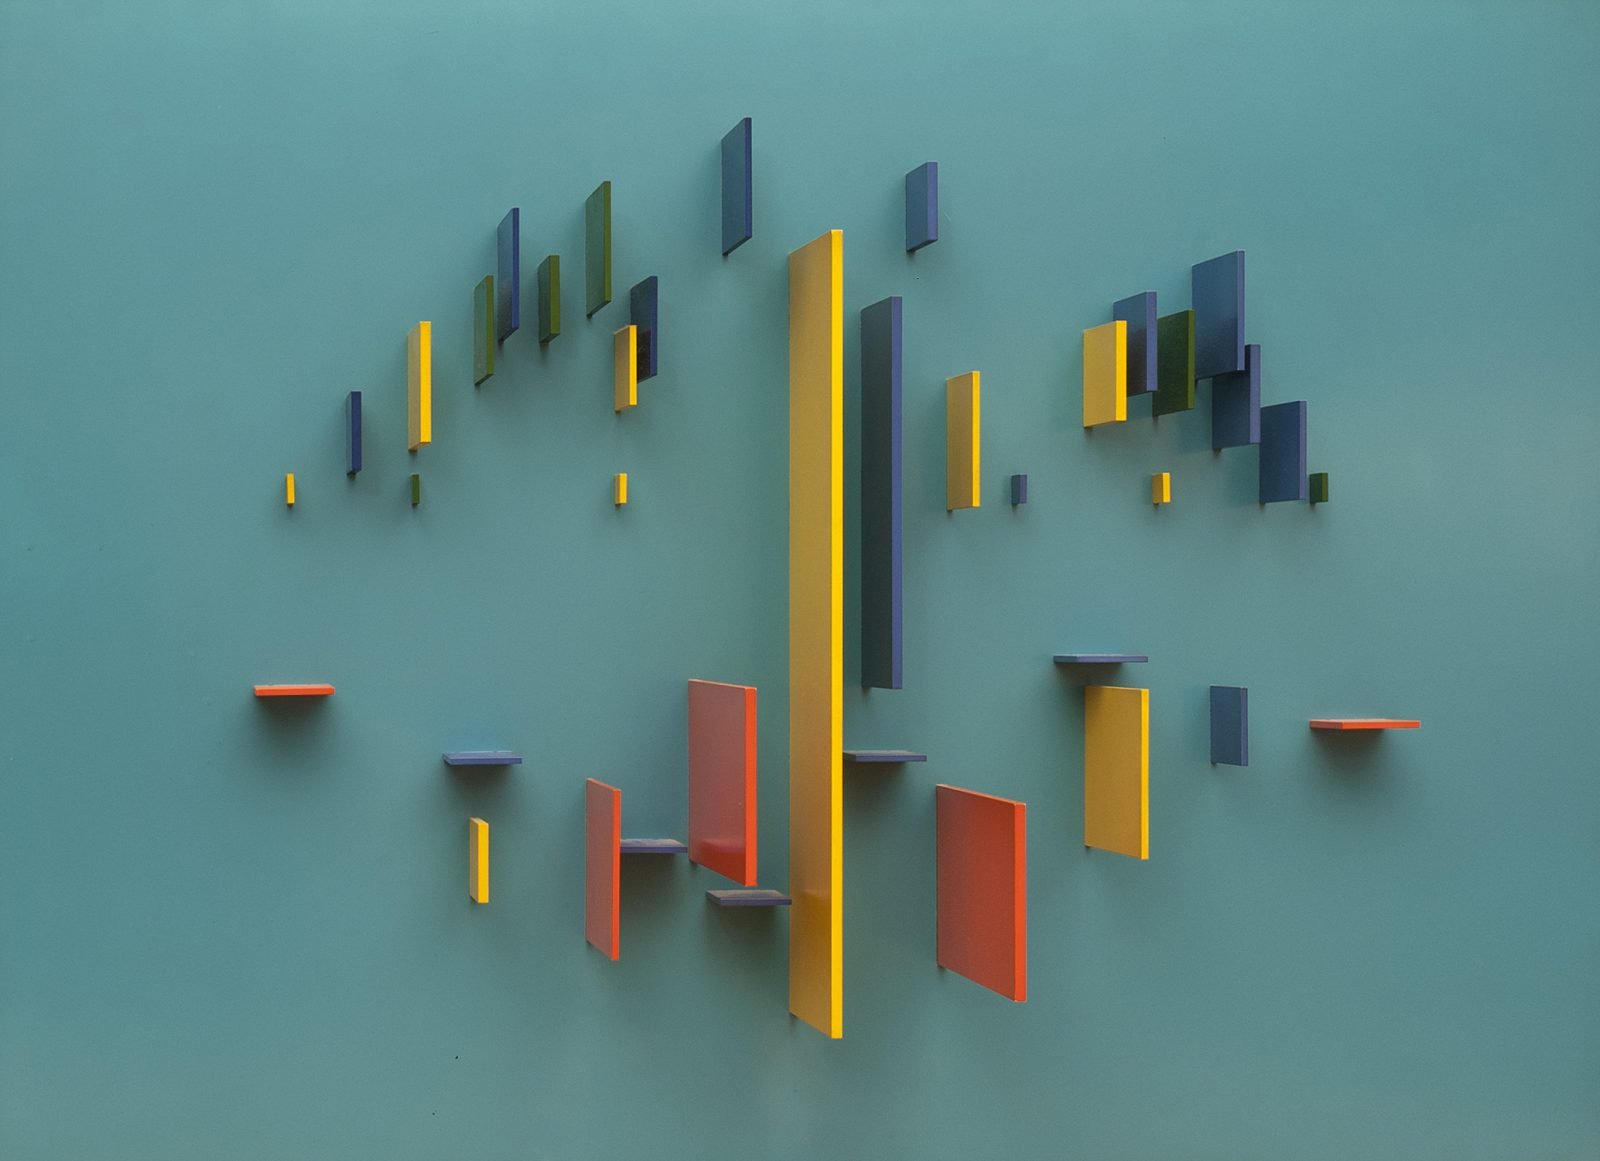 This work by Charles Biederman is a yellow, green, blue and red relief on a blue background